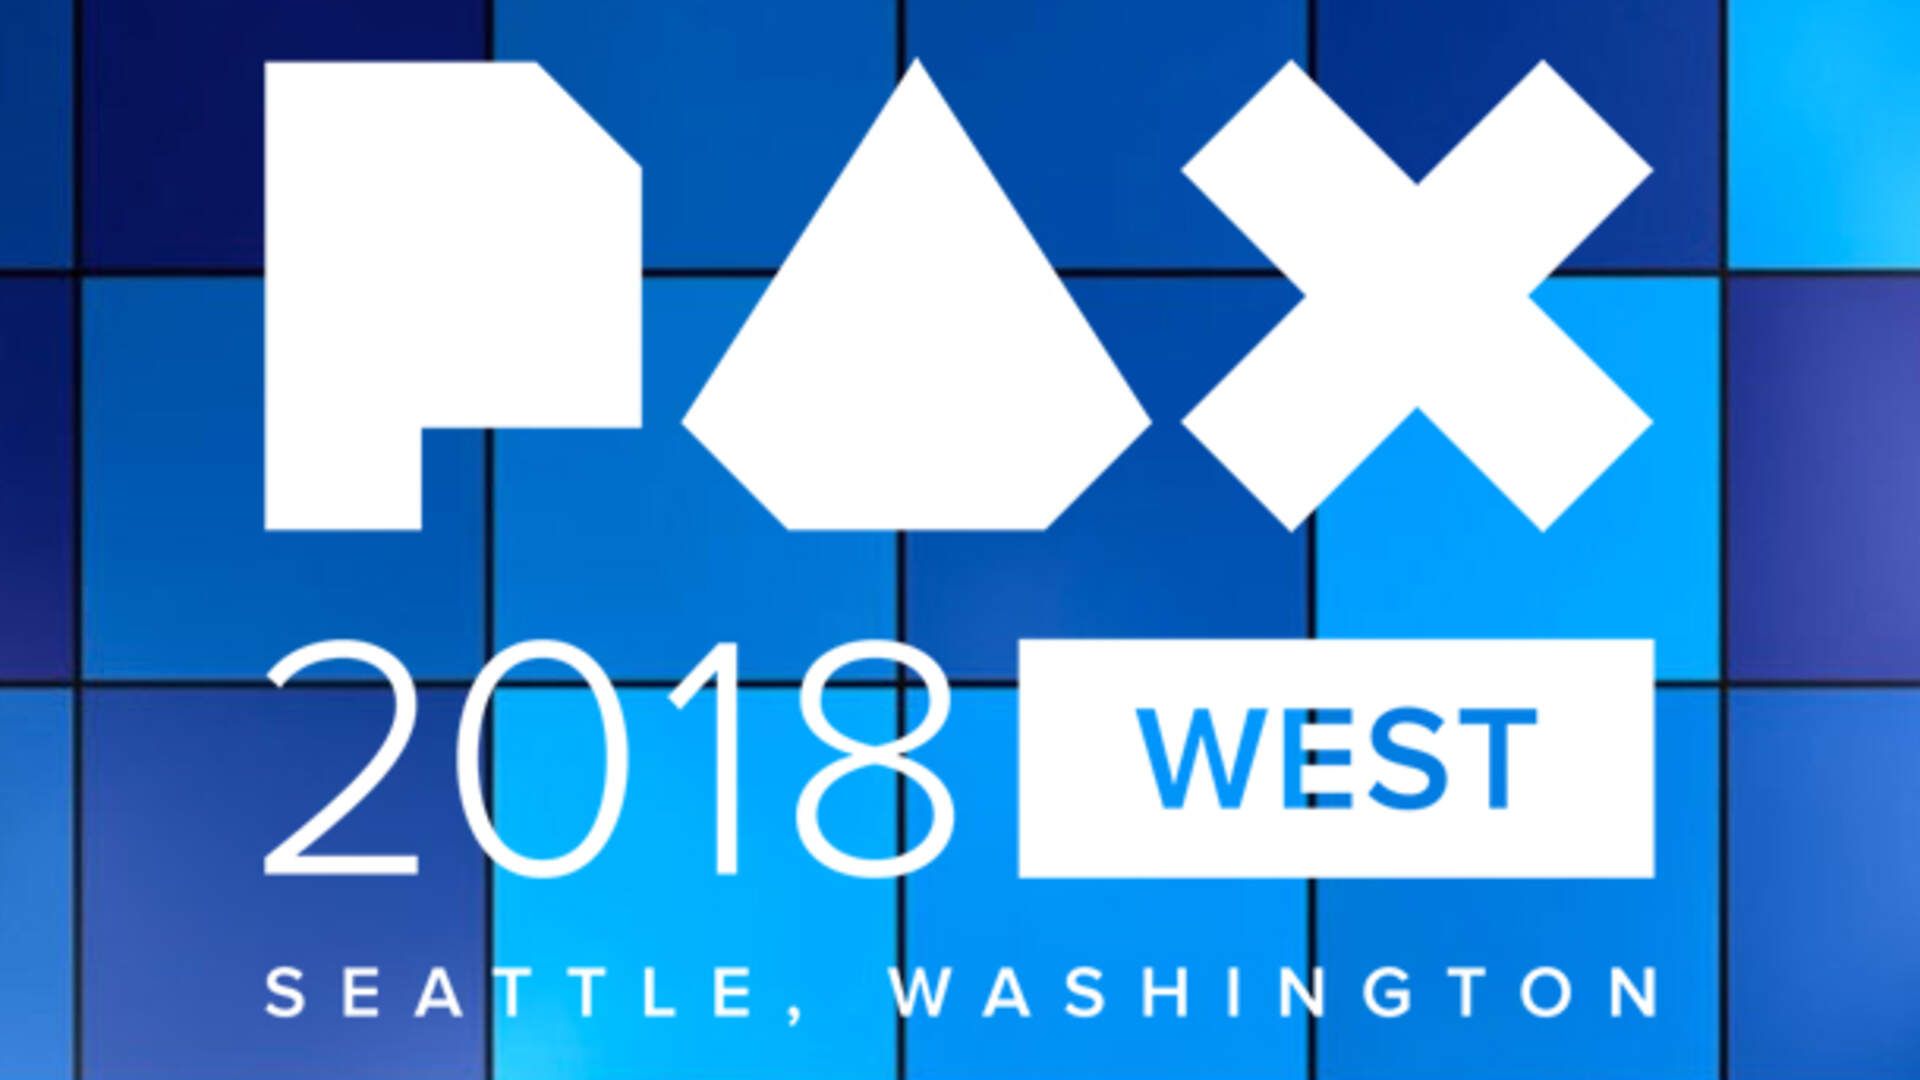 PAX West Responds to Security Concerns Following Jacksonville Mass Shooting